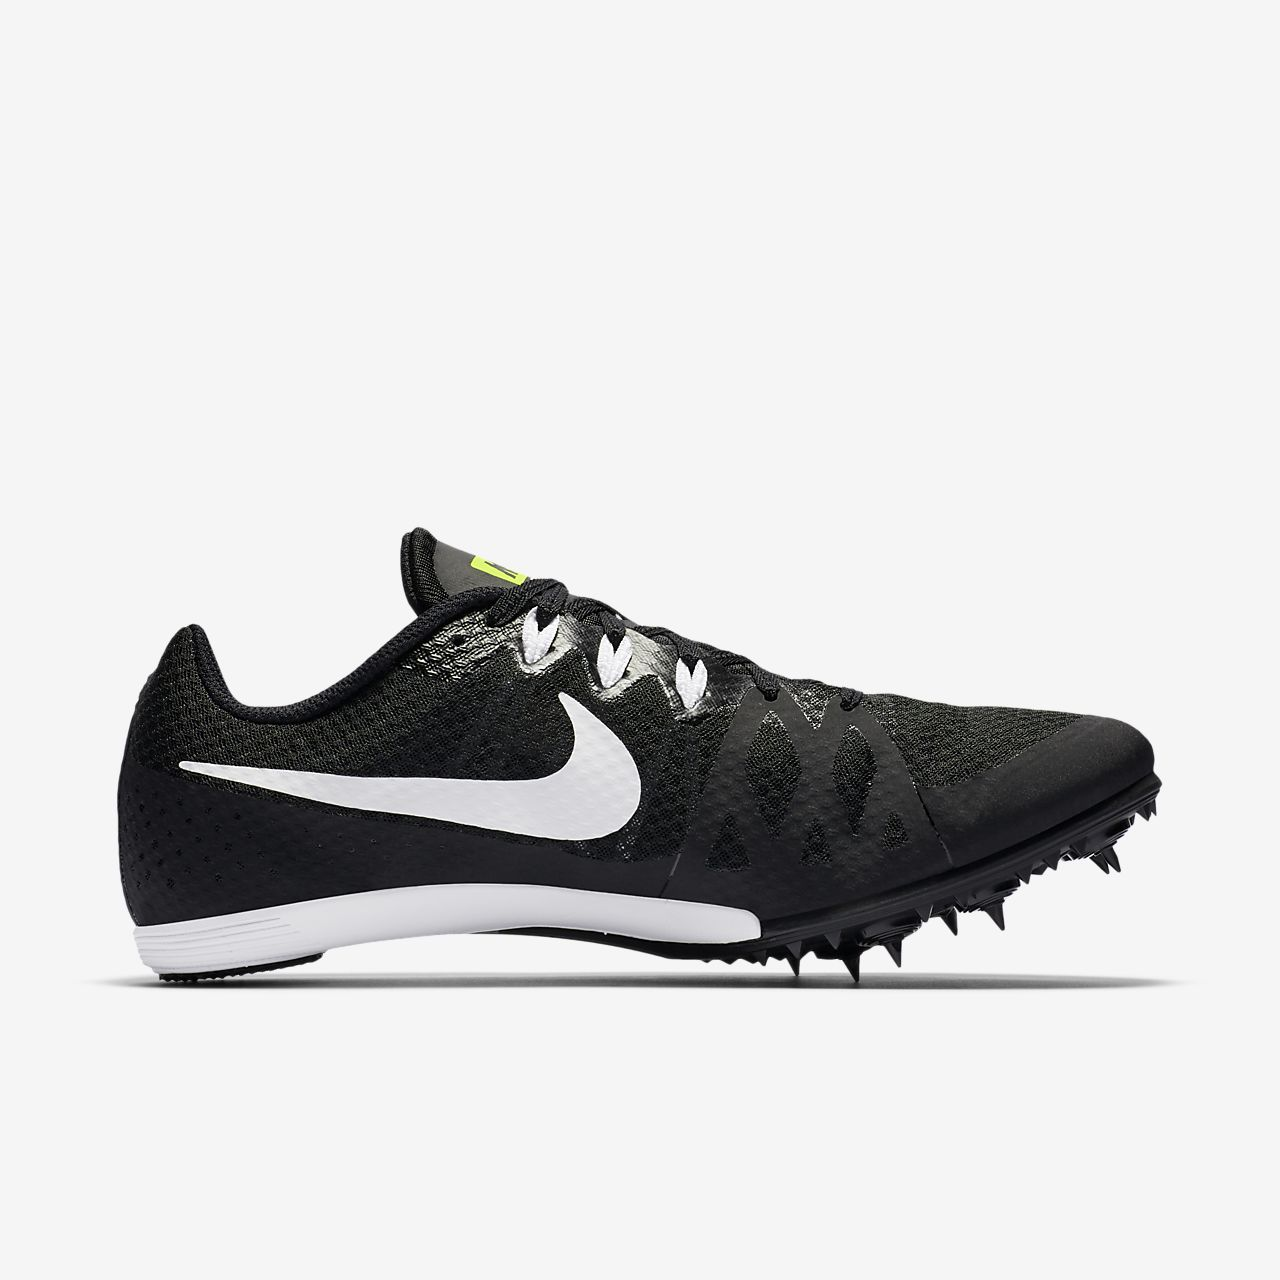 sports shoes c4ba5 52958 ... Nike Zoom Rival M 8 Unisex Distance Spike